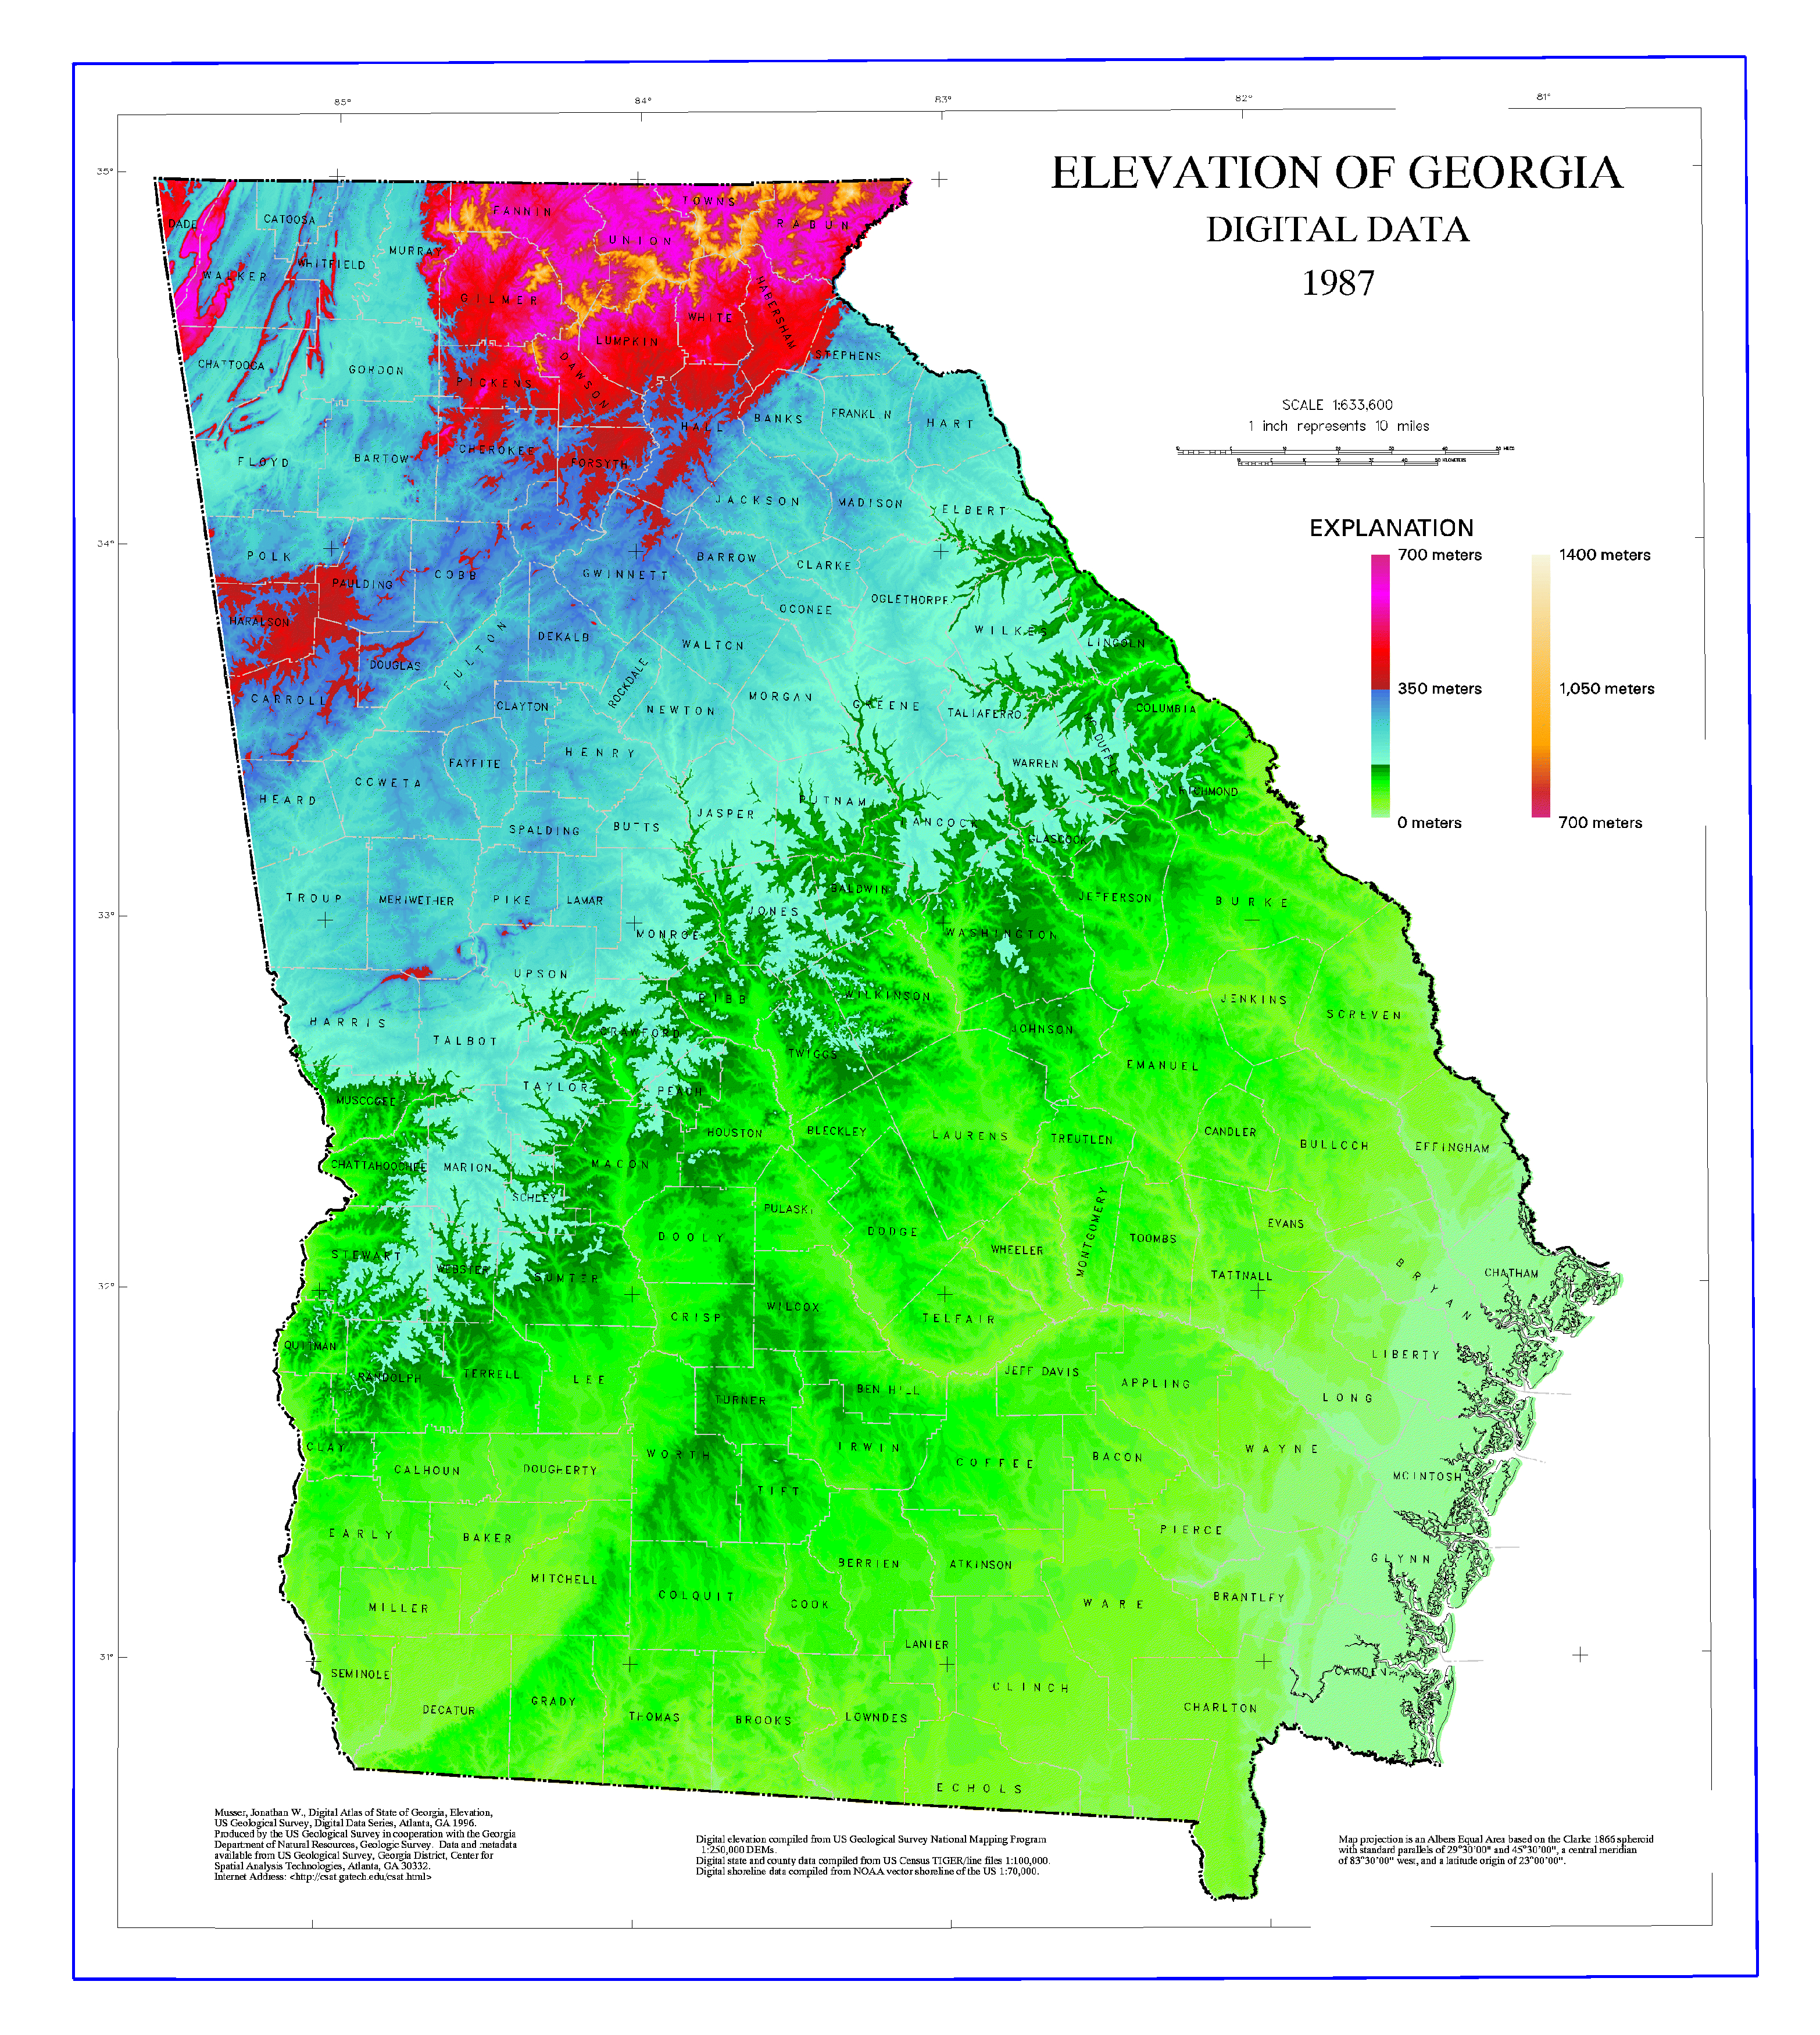 Geography Of Georgia (U.s. State) - Wikipedia - Printable Map Of St Simons Island Ga